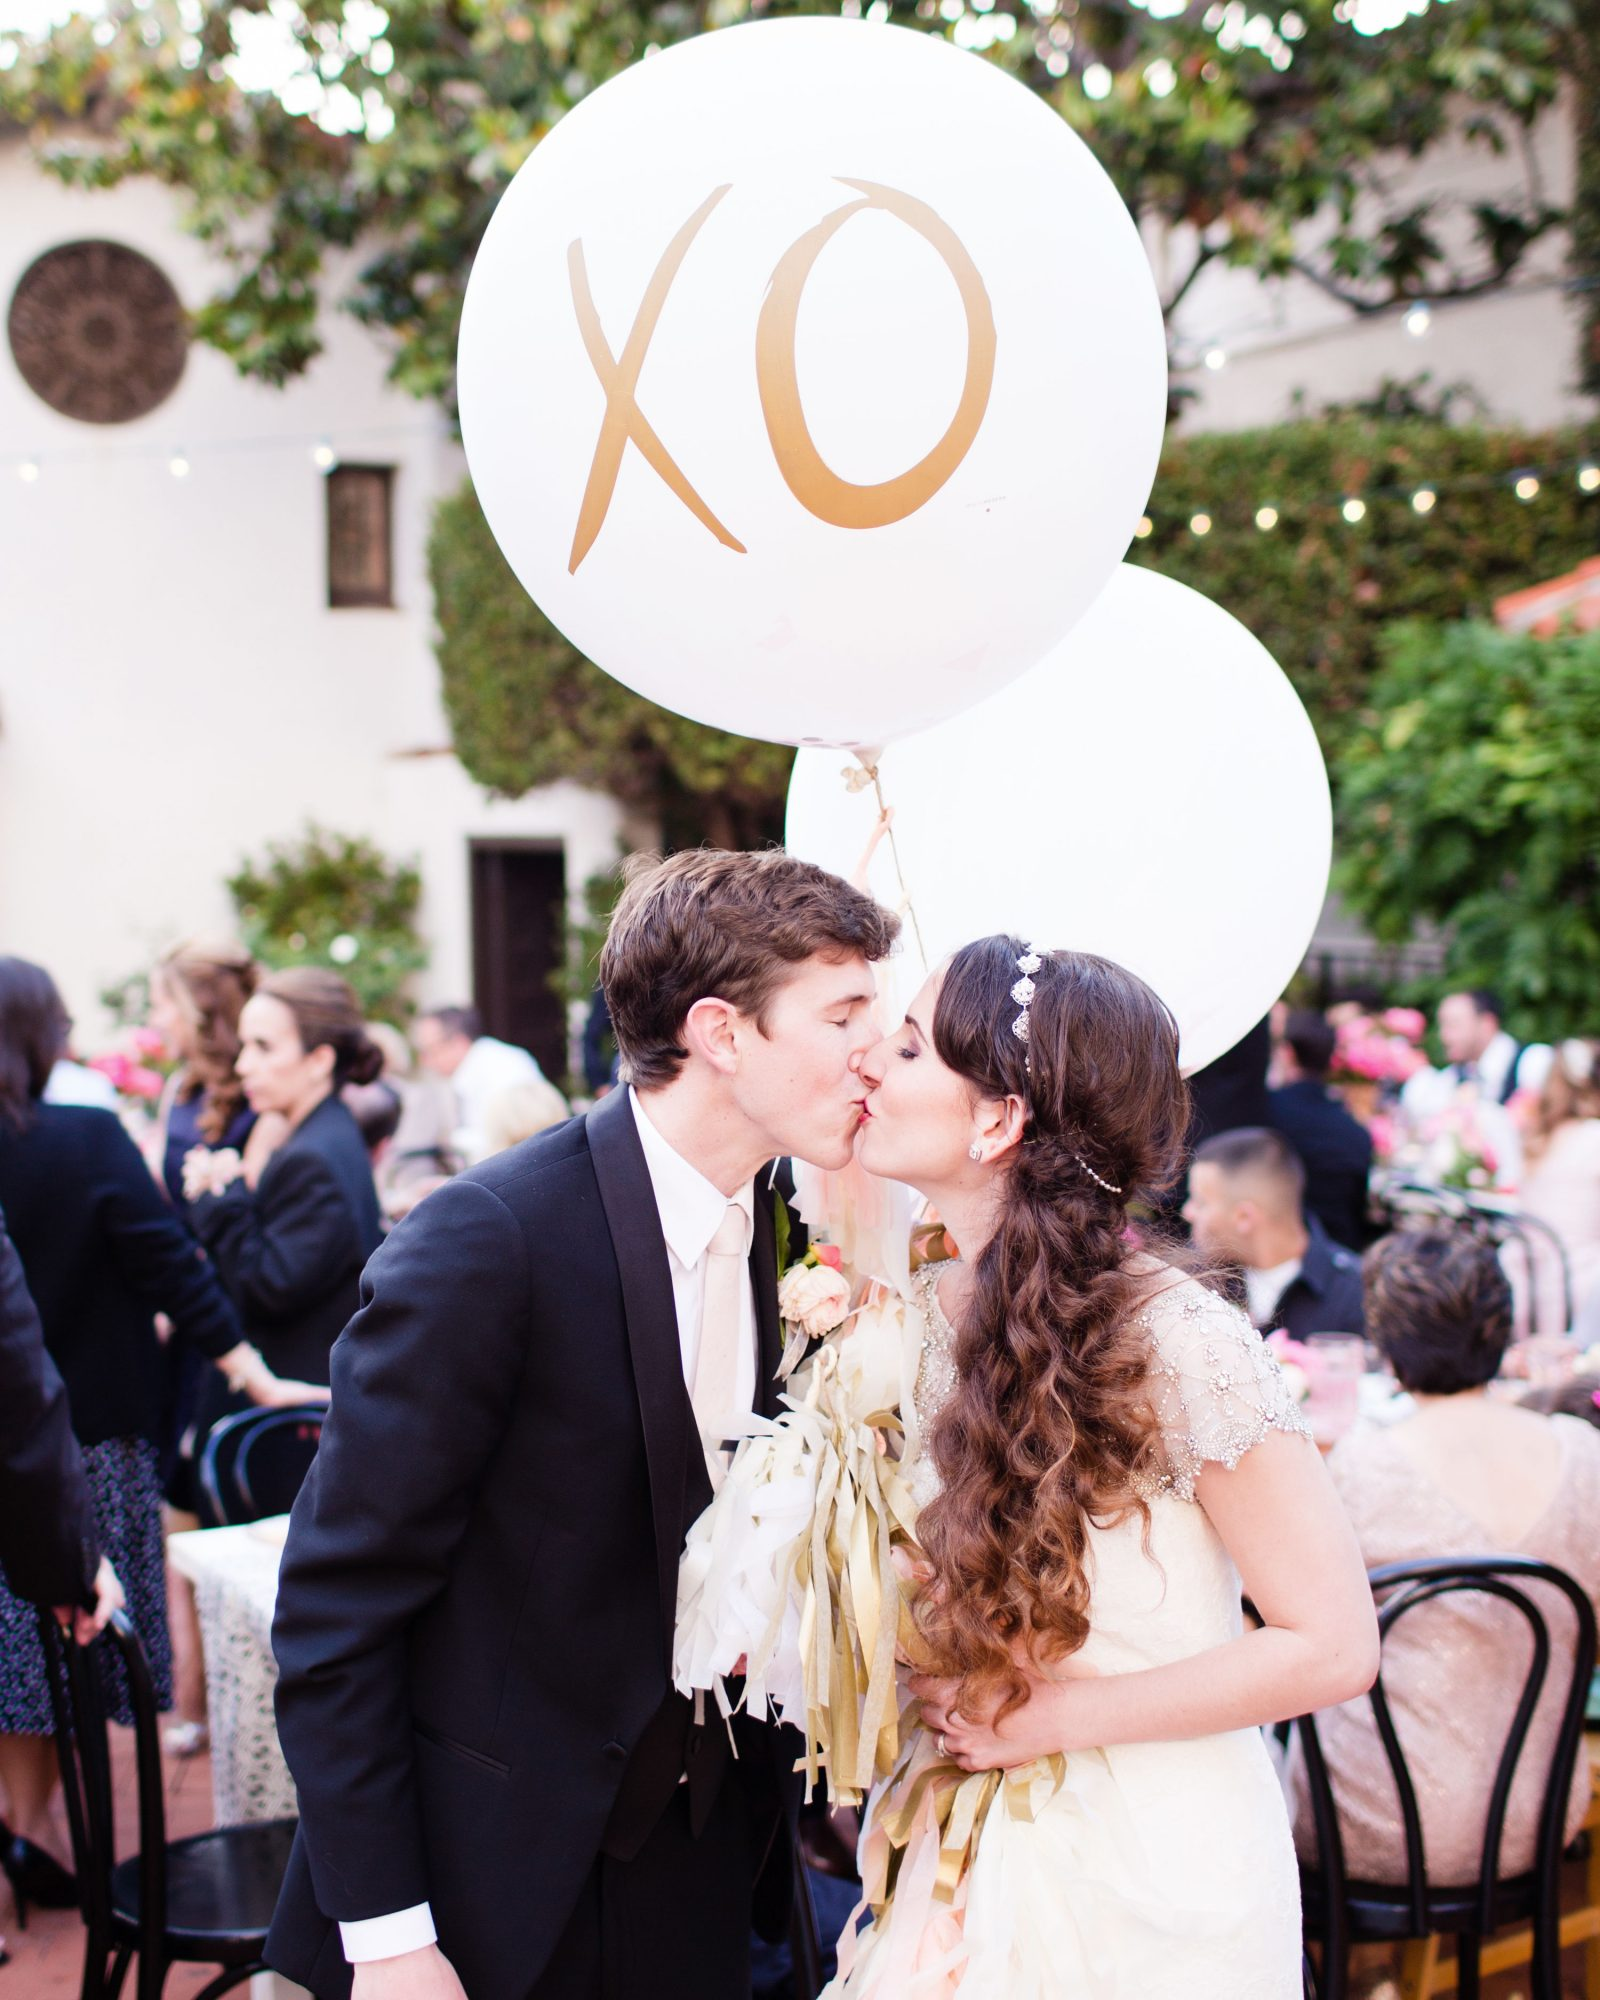 richelle-tom-wedding-kiss-balloons-826-s112855-0416.jpg